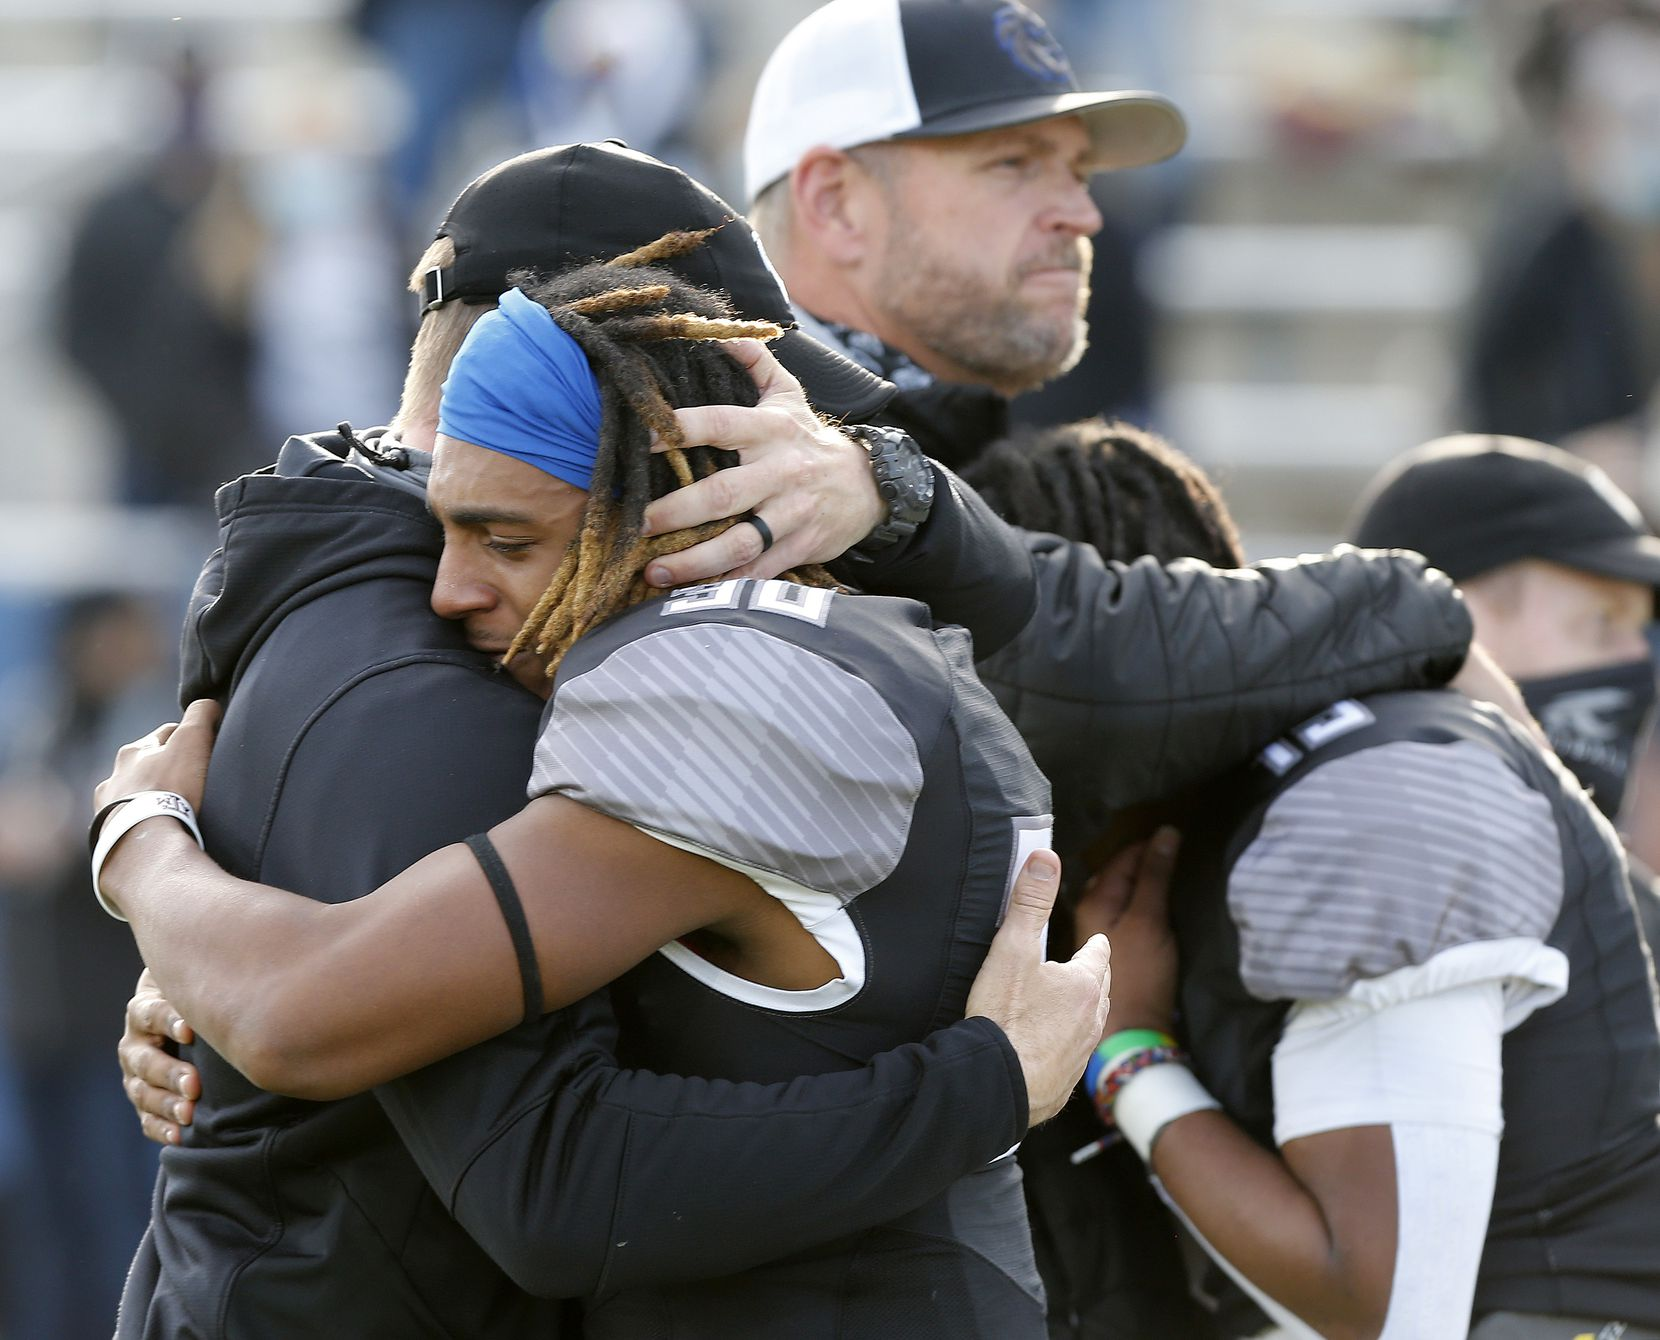 Denton Guyer High School running back Brailynn Pegues (30) is consoled by a coach after the loss as Denton Guyer High School played Cedar Hill High School in the Class 6A Division II, state semifinal at McKinney ISD Stadium in McKinney on Saturday, January 9, 2021.  (Stewart F. House/Special Contributor)